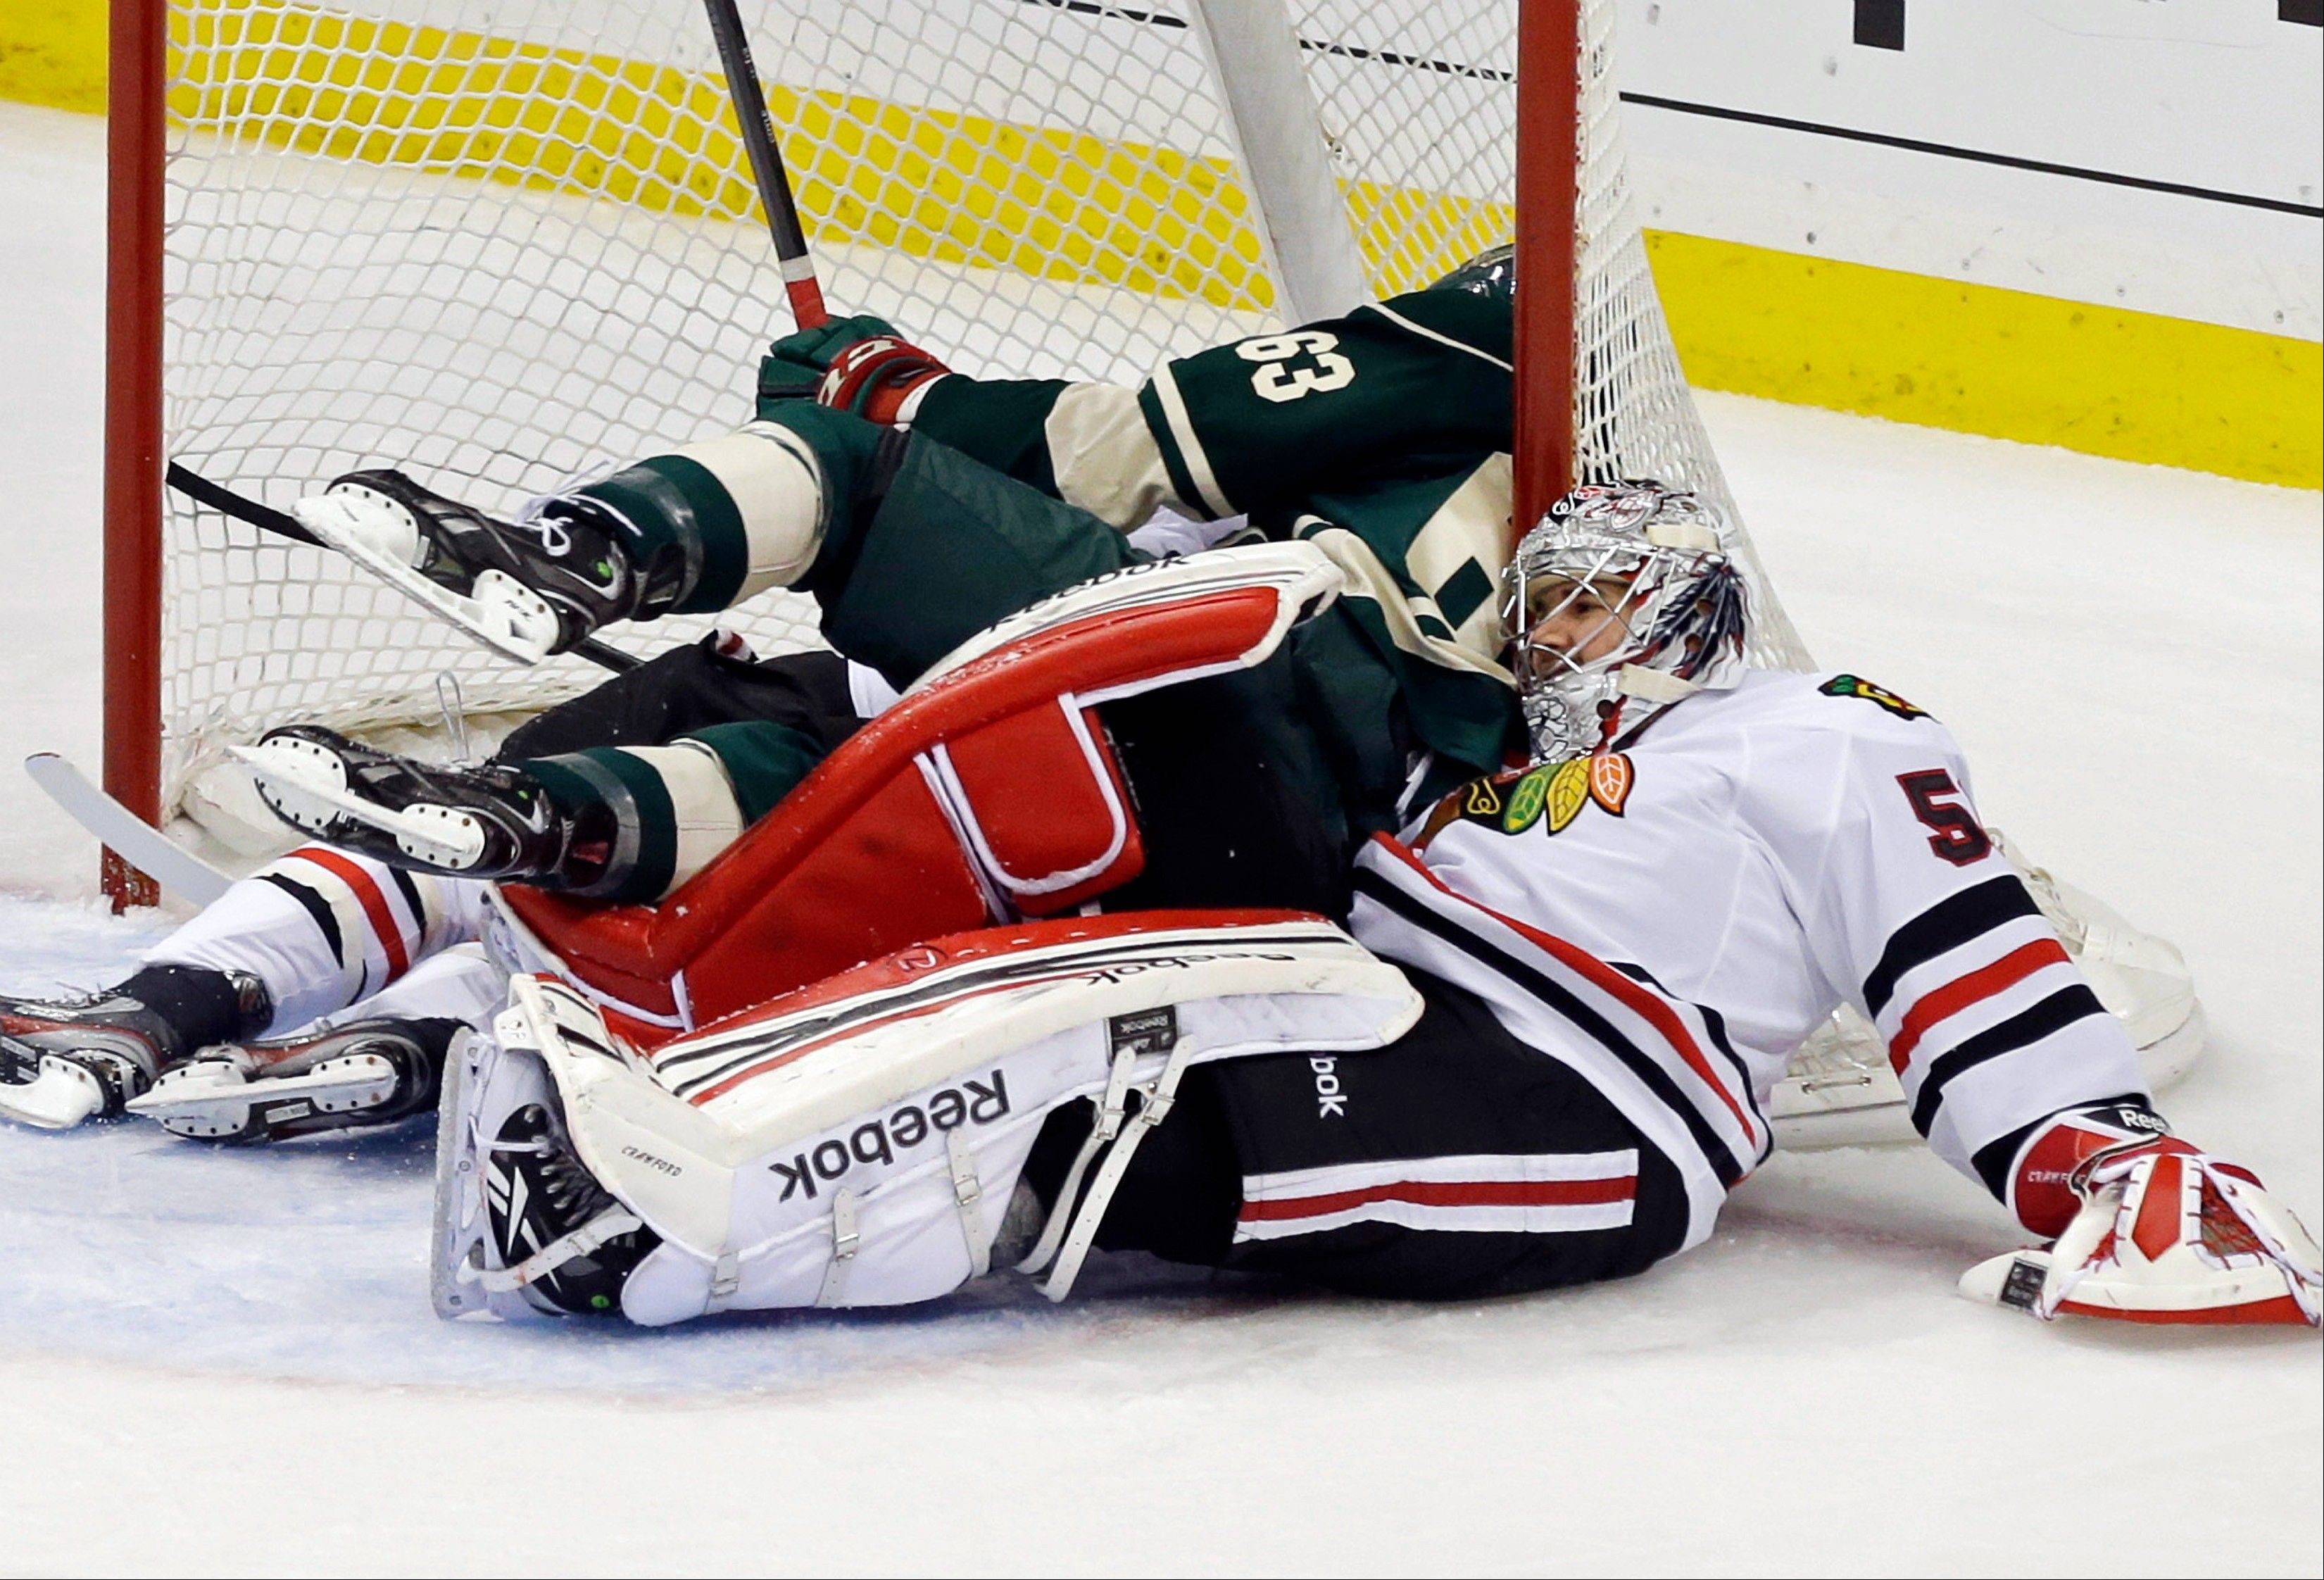 Chicago Blackhawks goalie Corey Crawford, right, winds up outside the goal as Blackhawks' Duncan Keith and Minnesota Wild's Charlie Coyle wound up in the goal in the first period of Game 4 of an NHL hockey Stanley Cup playoff series, Tuesday, May 7, 2013 in St. Paul, Minn.